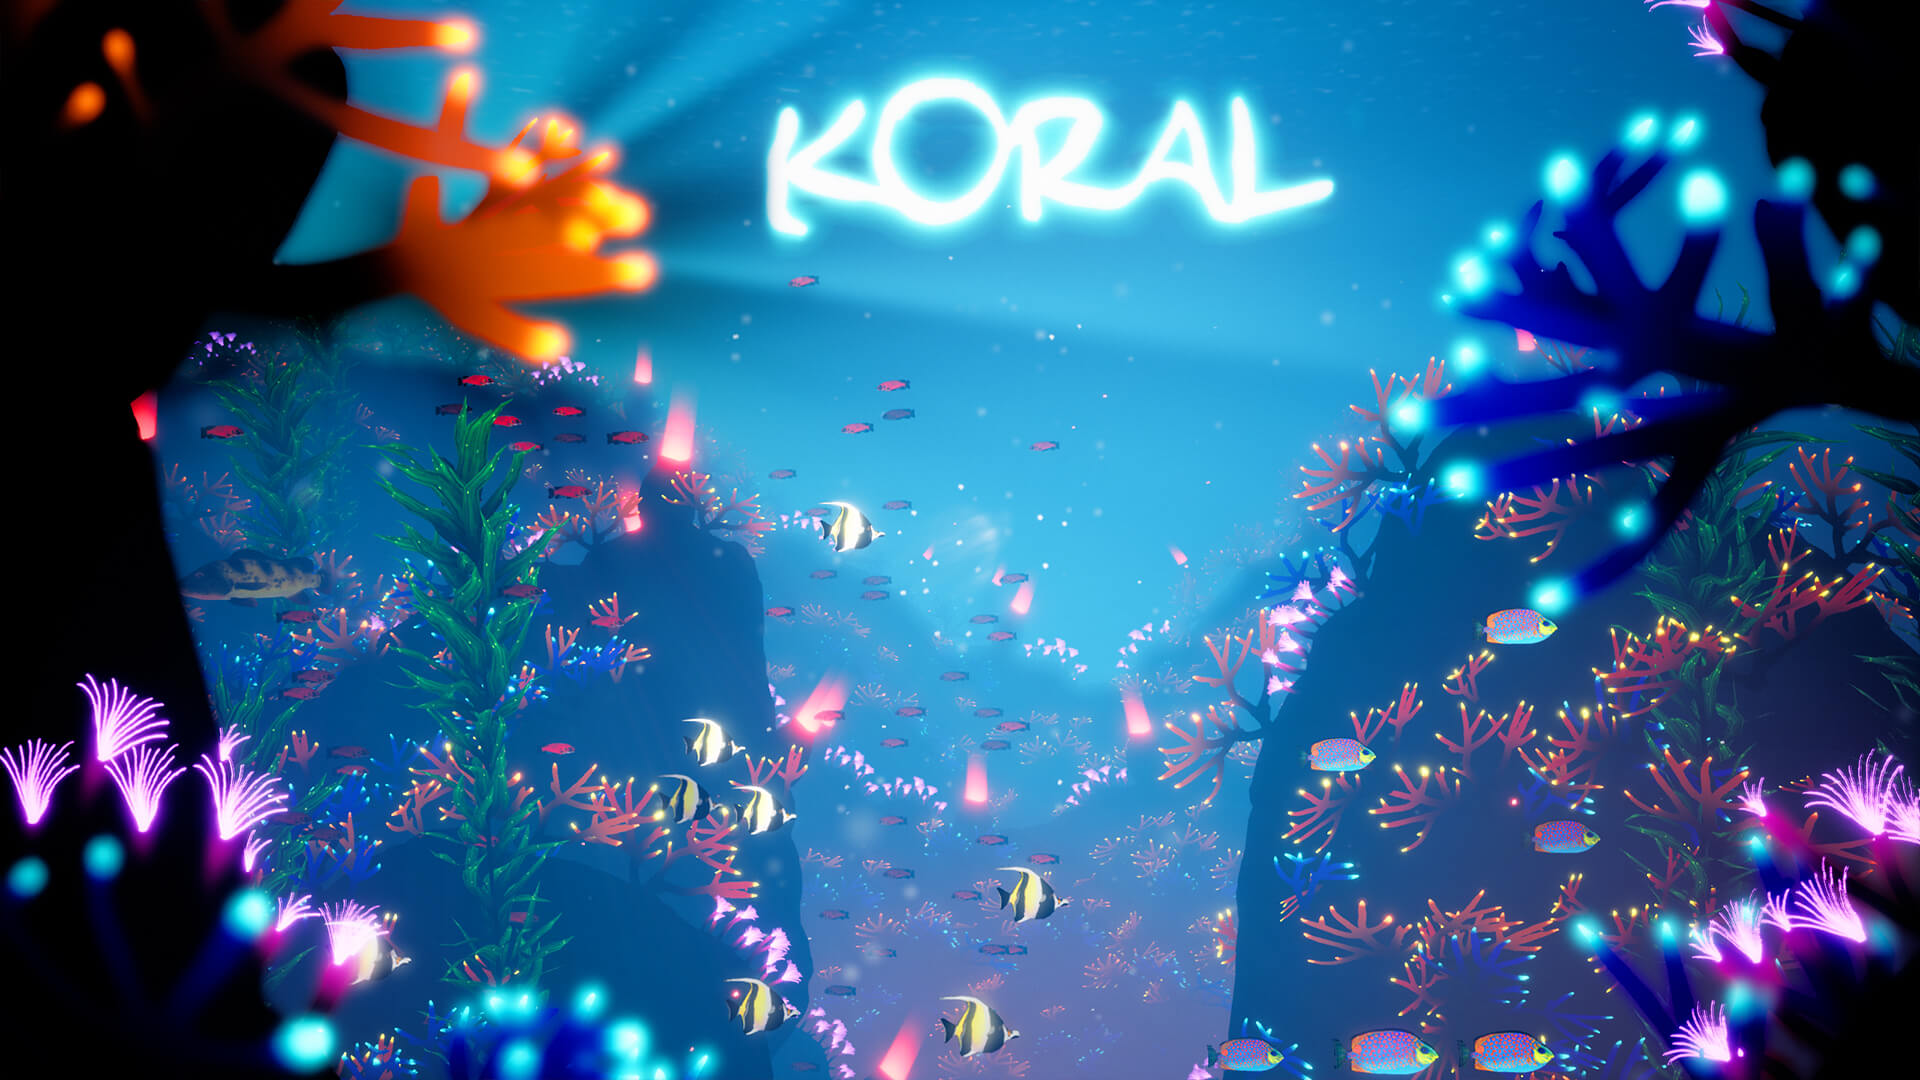 Developer-Interview_Koral_03.jpg